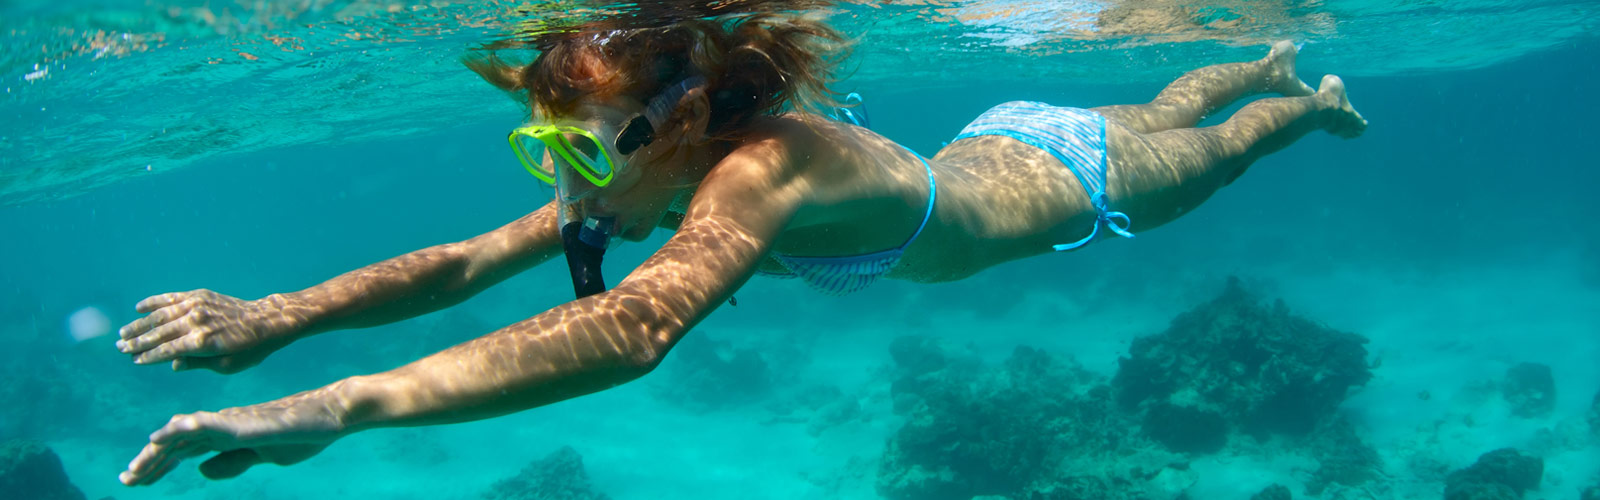 Snorkelling the reef – Great Barrier Reef